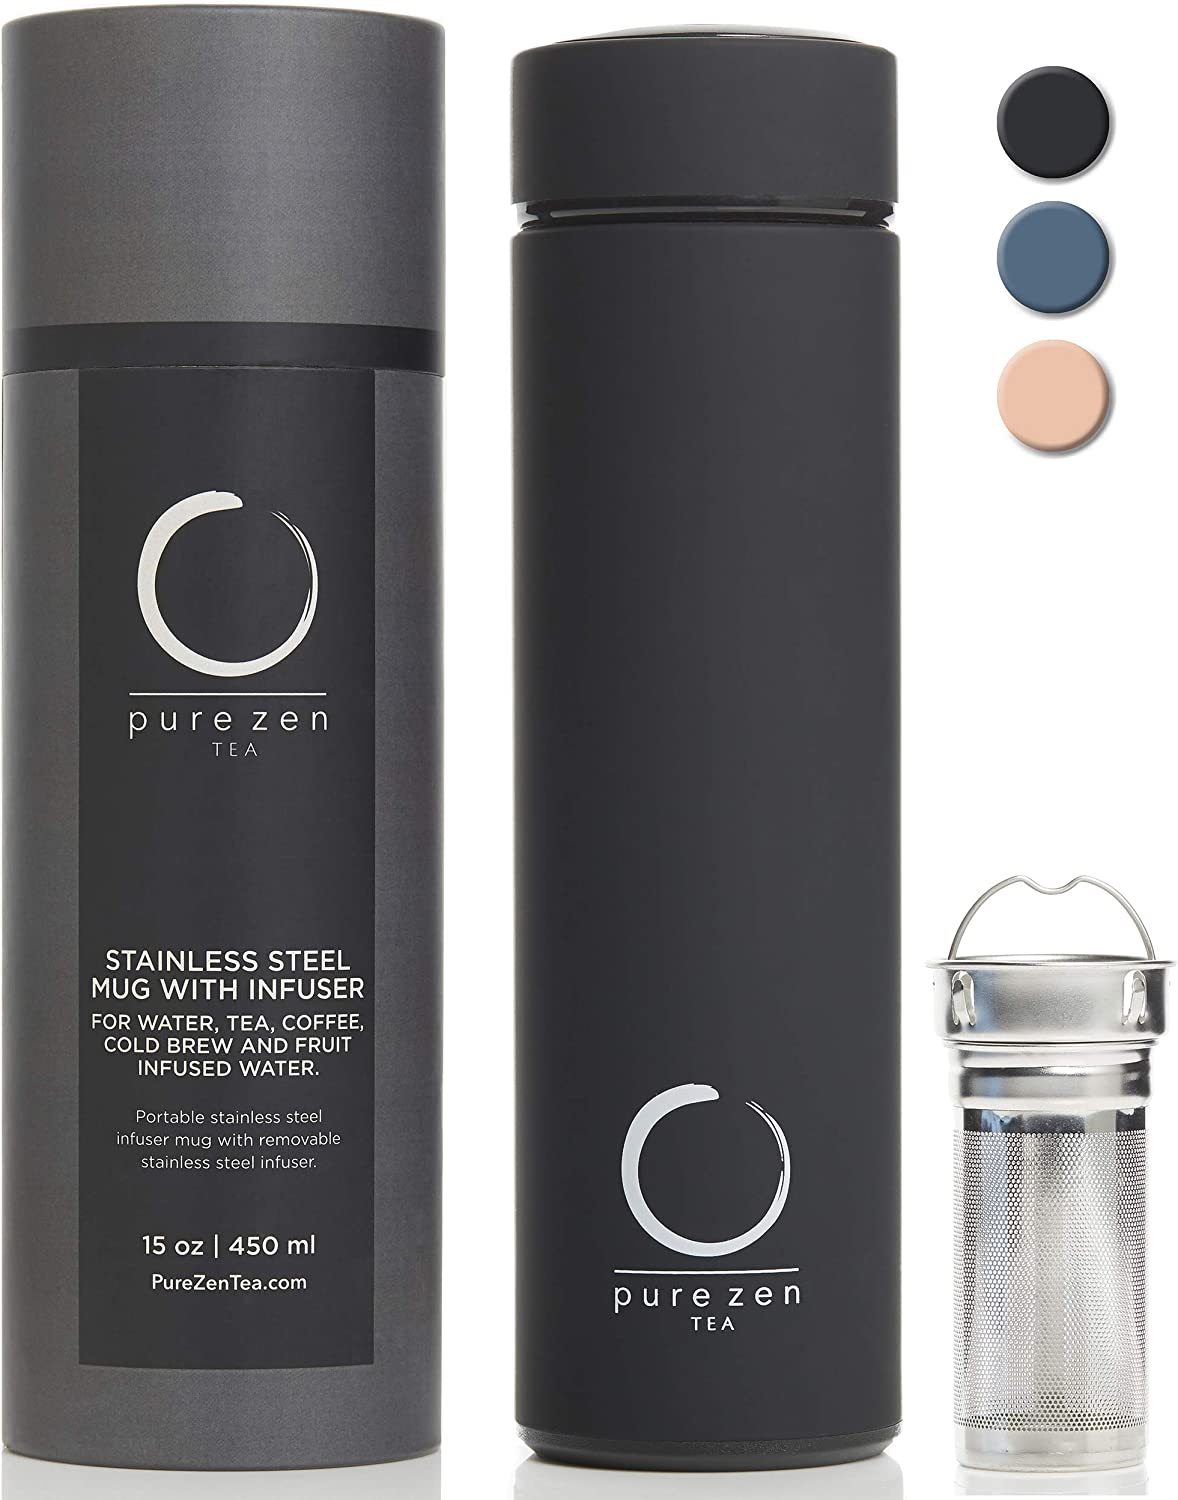 Pure Zen Tea Thermos with Infuser - Stainless Steel Insulated Tea Infuser Tumbler for Loose Leaf Tea, Iced Coffee and Fruit-Infused Water - Leakproof Tea Tumbler With Infuser - 15oz - Black